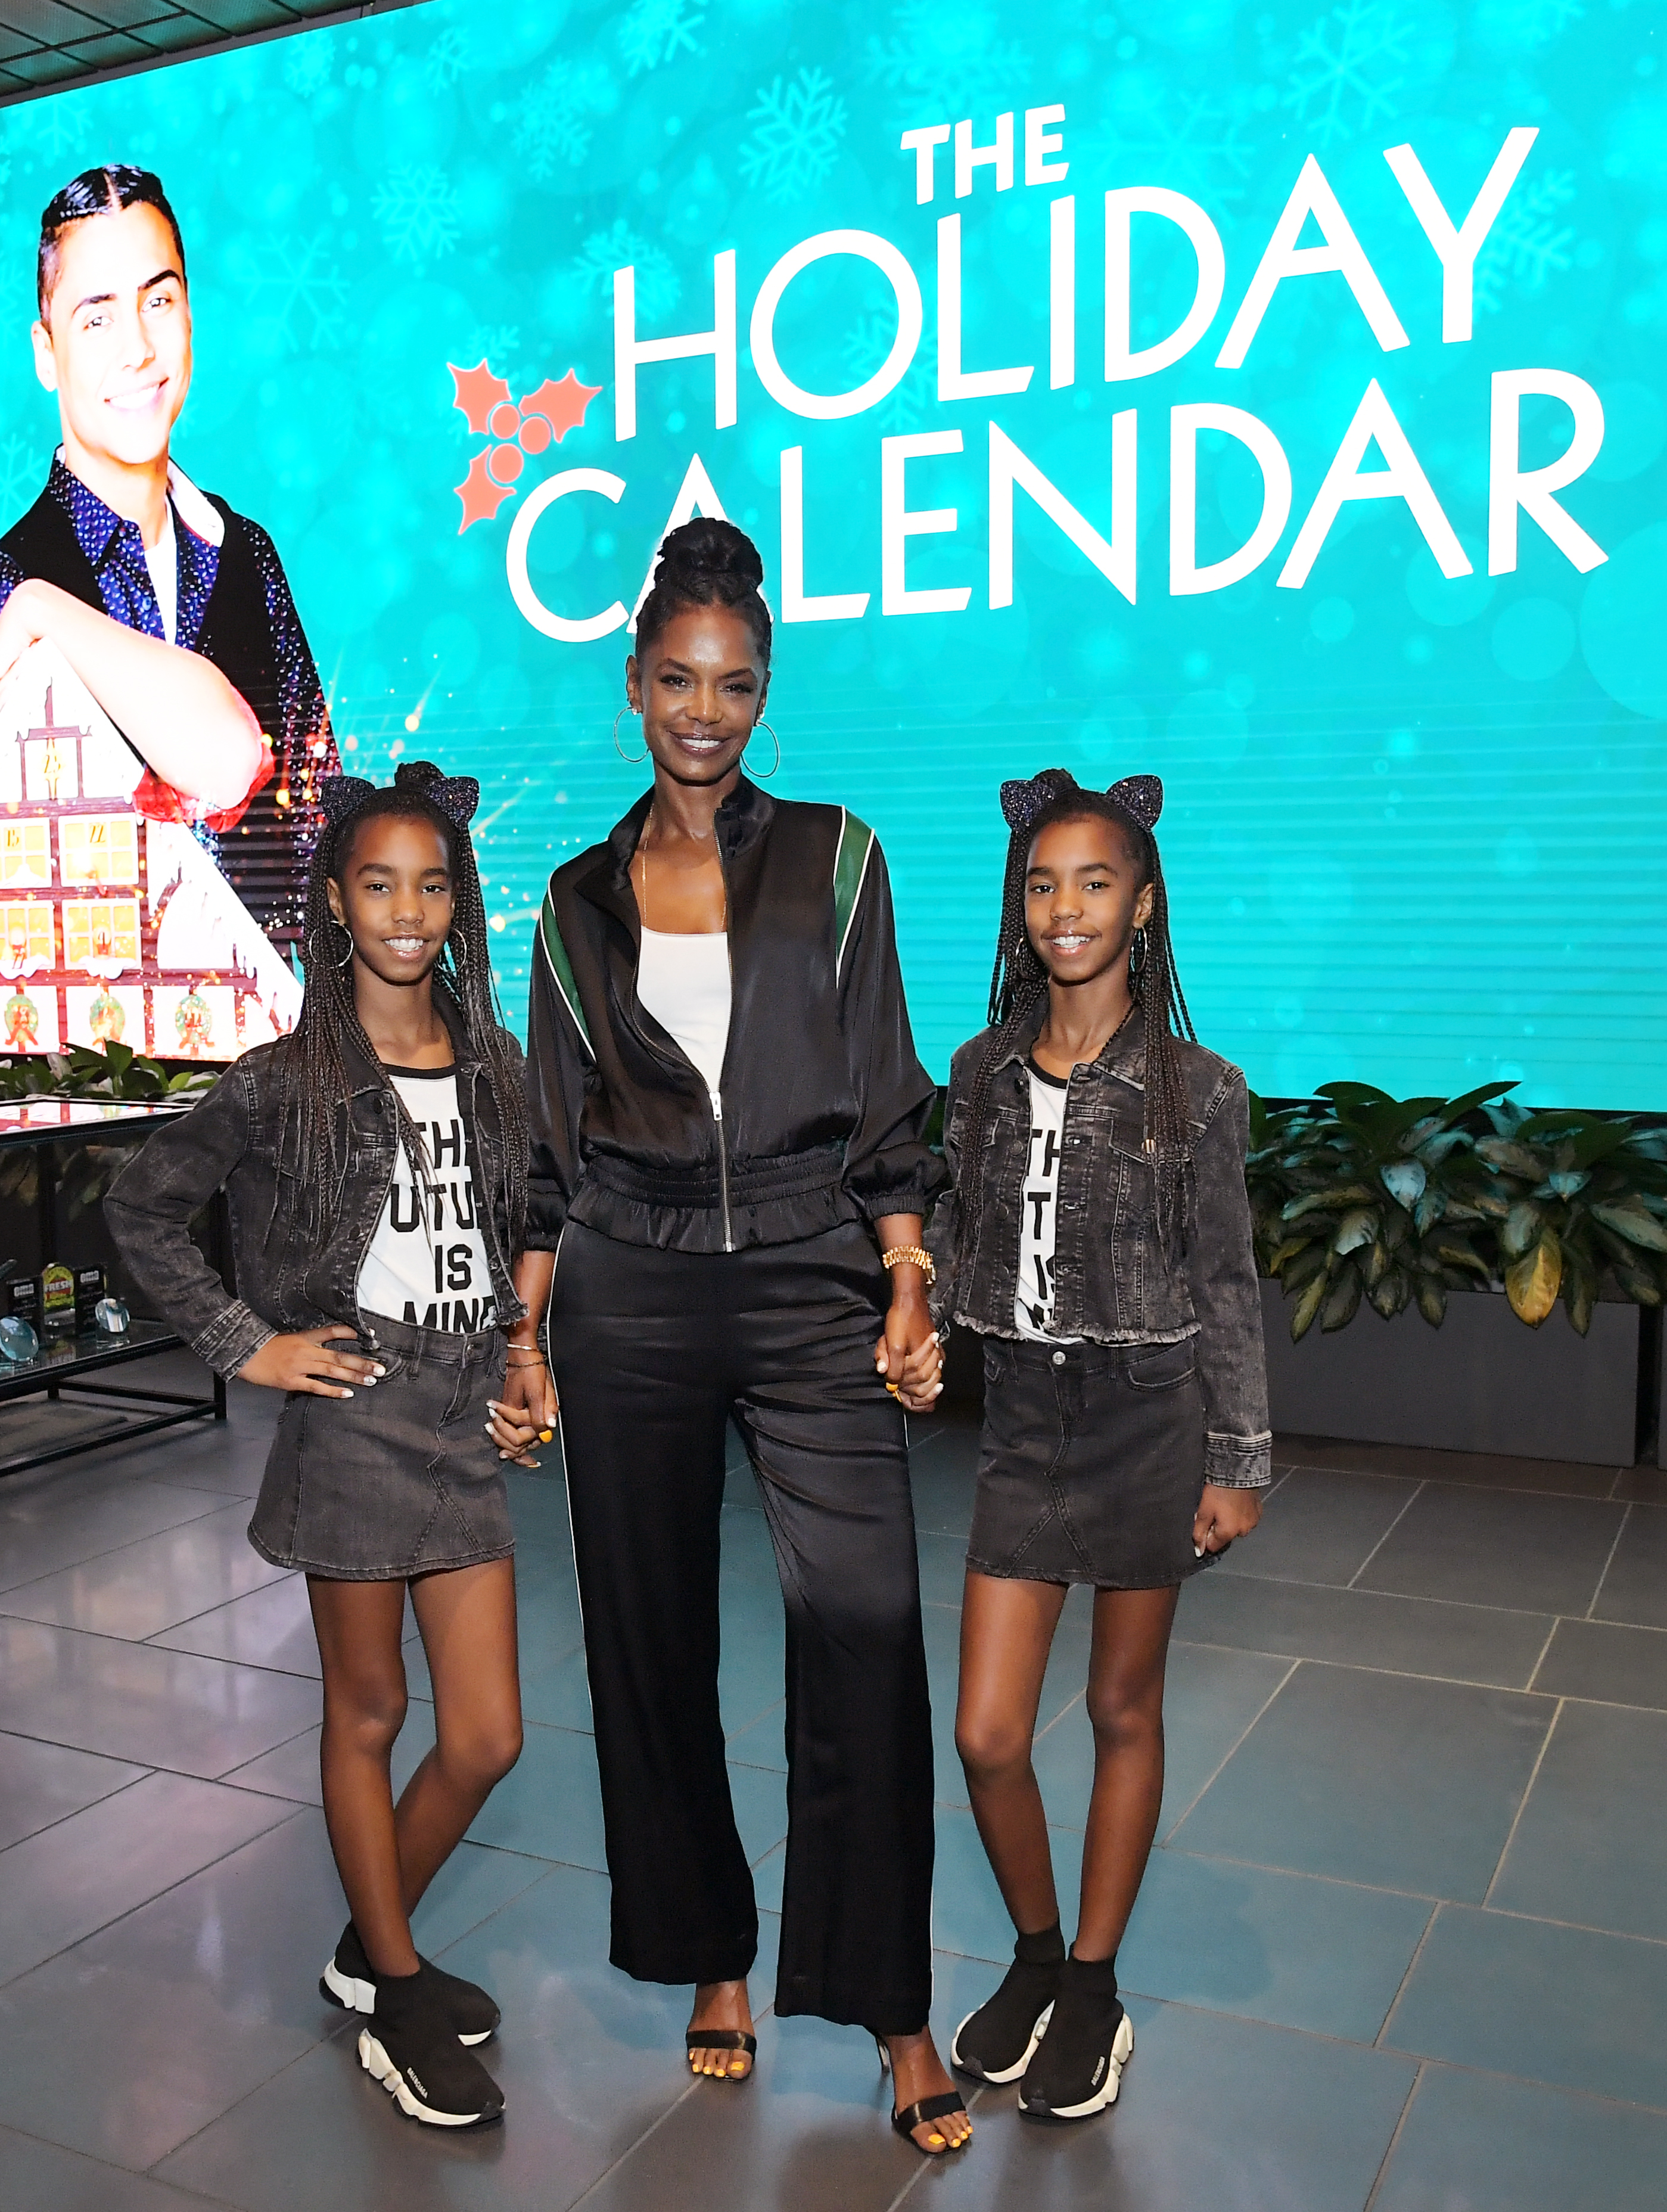 Kim Porter attends 'The Holiday Calendar' Special Screening Los Angeles at NETFLIX Icon Building on October 30, 2018 in Los Angeles, California.